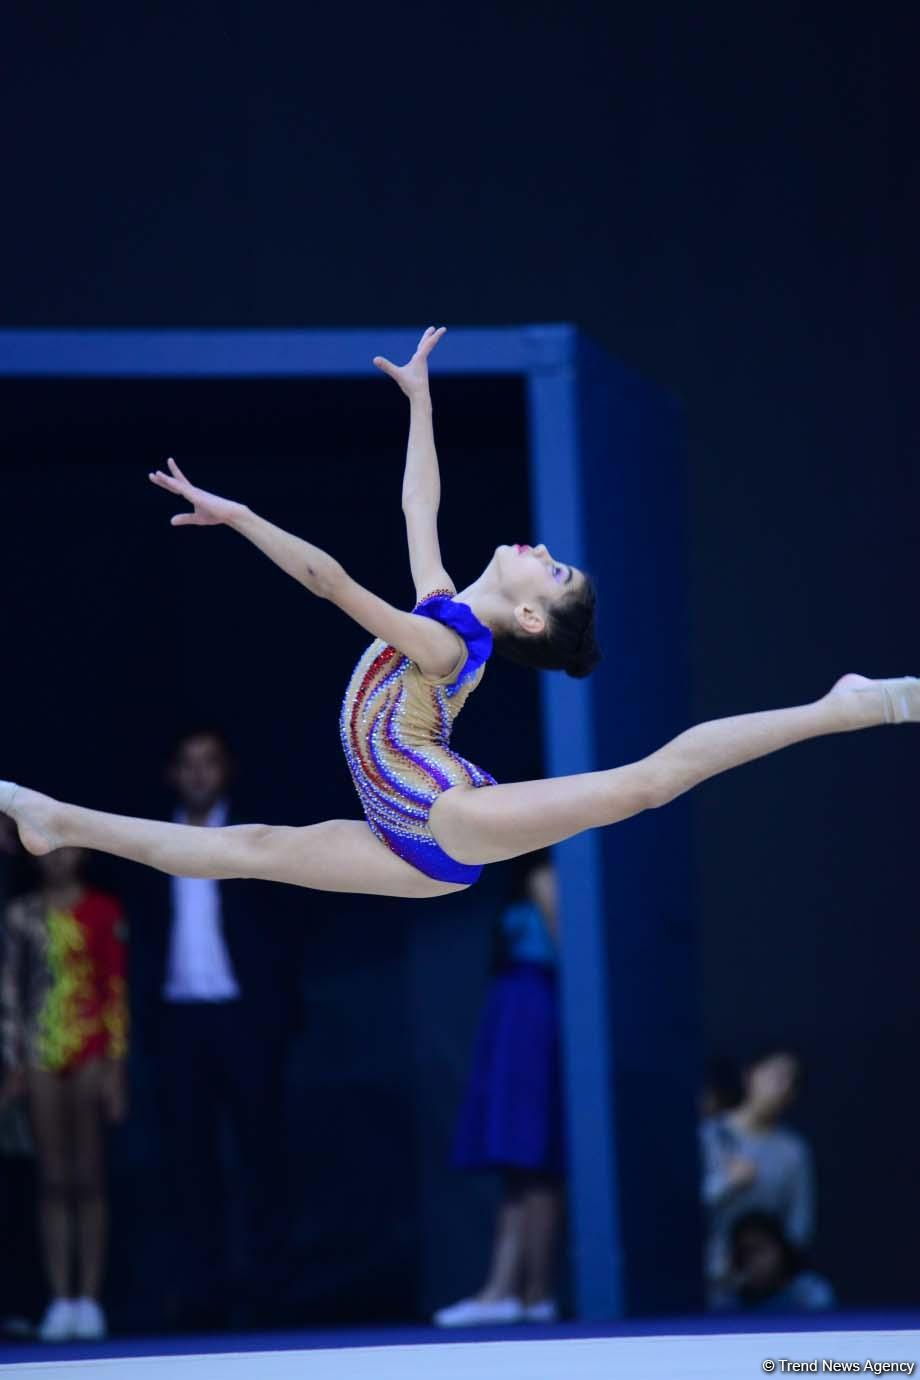 Baku hosts awarding ceremony for winners of 26th Azerbaijan and Baku Rhythmic Gymnastics Championships and 5th Azerbaijan and Baku Championships in Aerobic Gymnastics